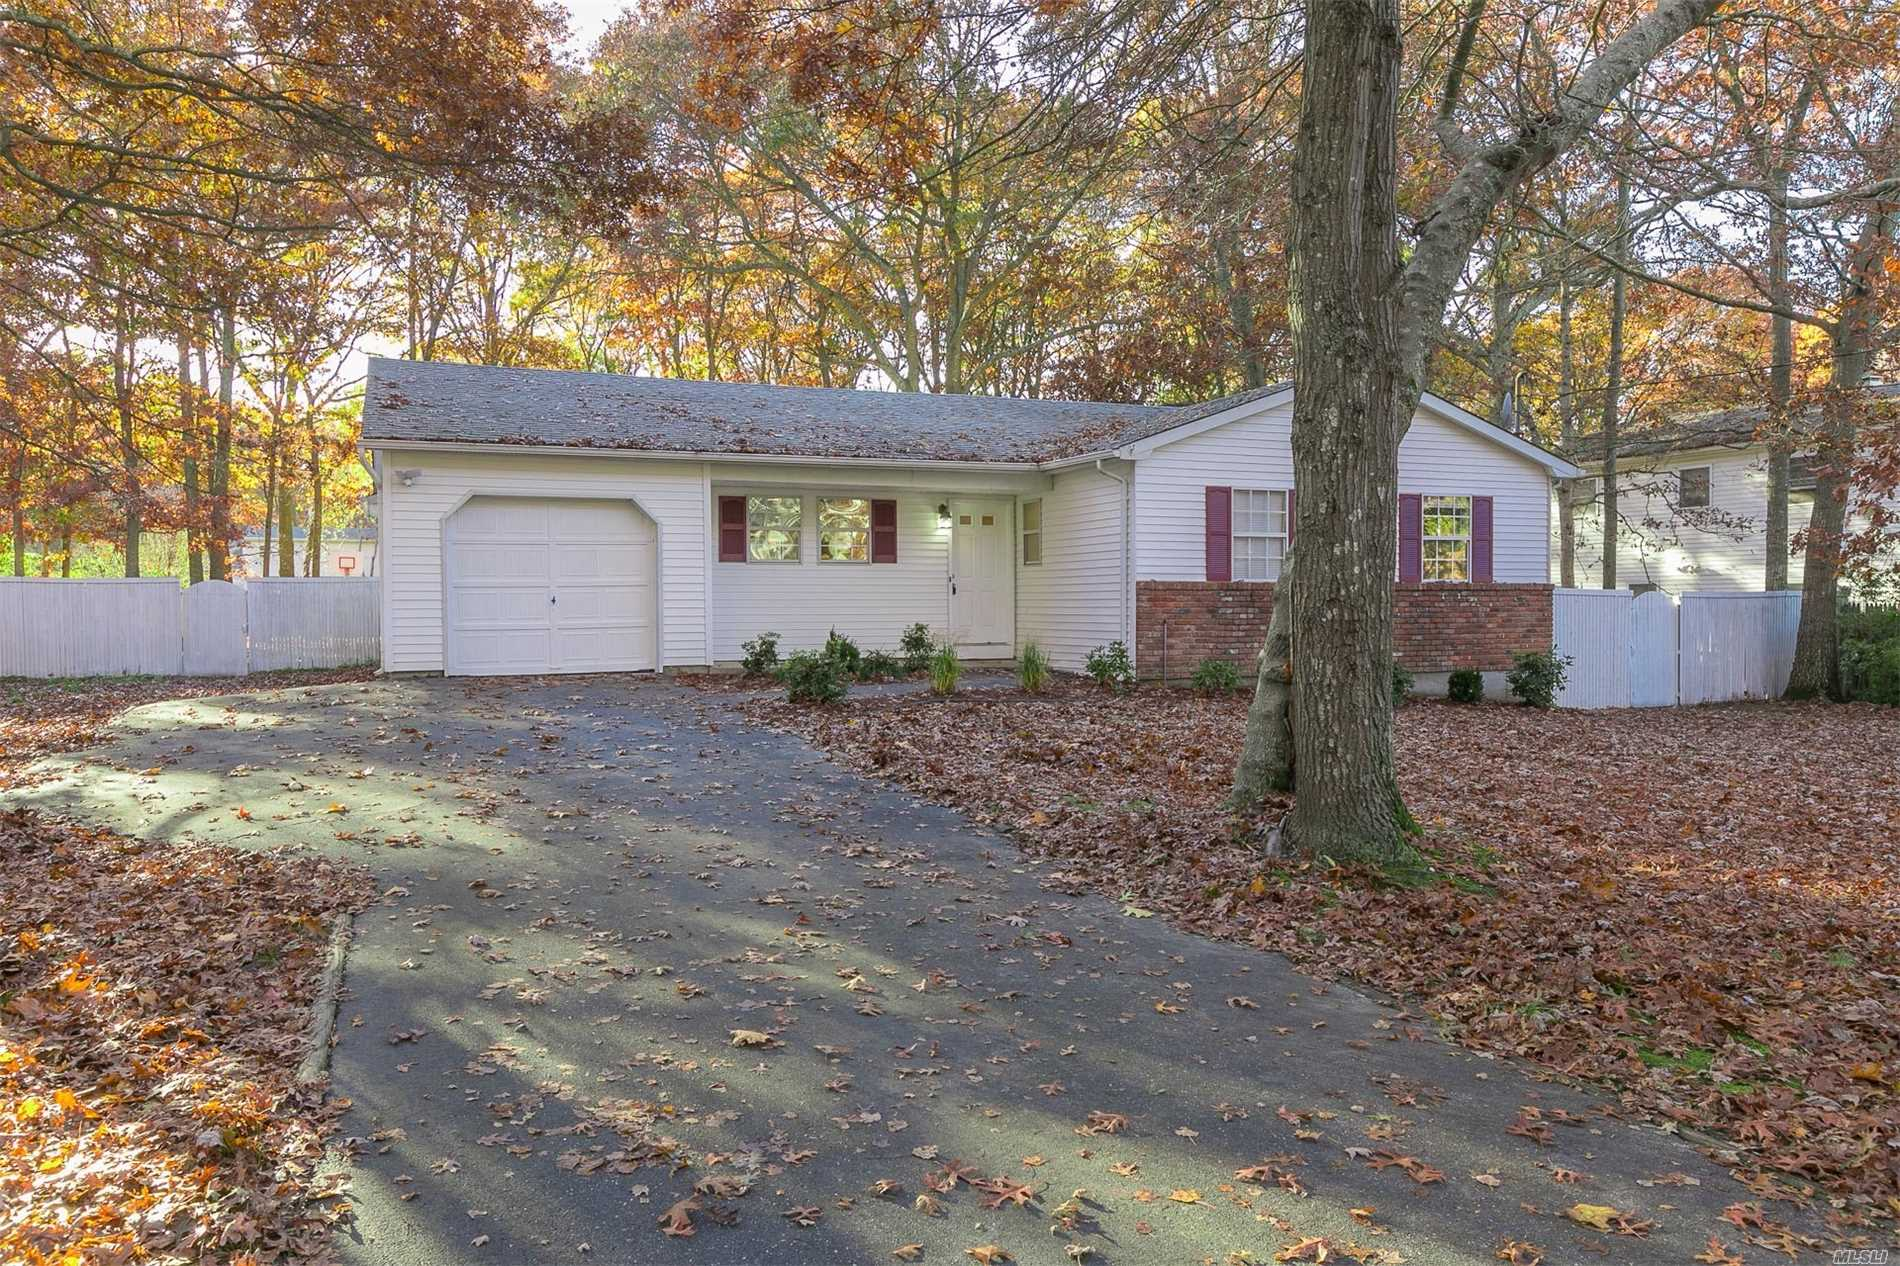 Recipe For House Happiness Is This 4 Br, 2.5 Bath Sprawling Ranch. Features New Kitchen, Floors, Paint, Den, Lr, Dr, Full Basement, Garage, Cac And A Fantastic Yard W/ Bball Ct, Play Set, Patio For Family, Friends And Pets..Close To All Major Highways To Save On Your Commute